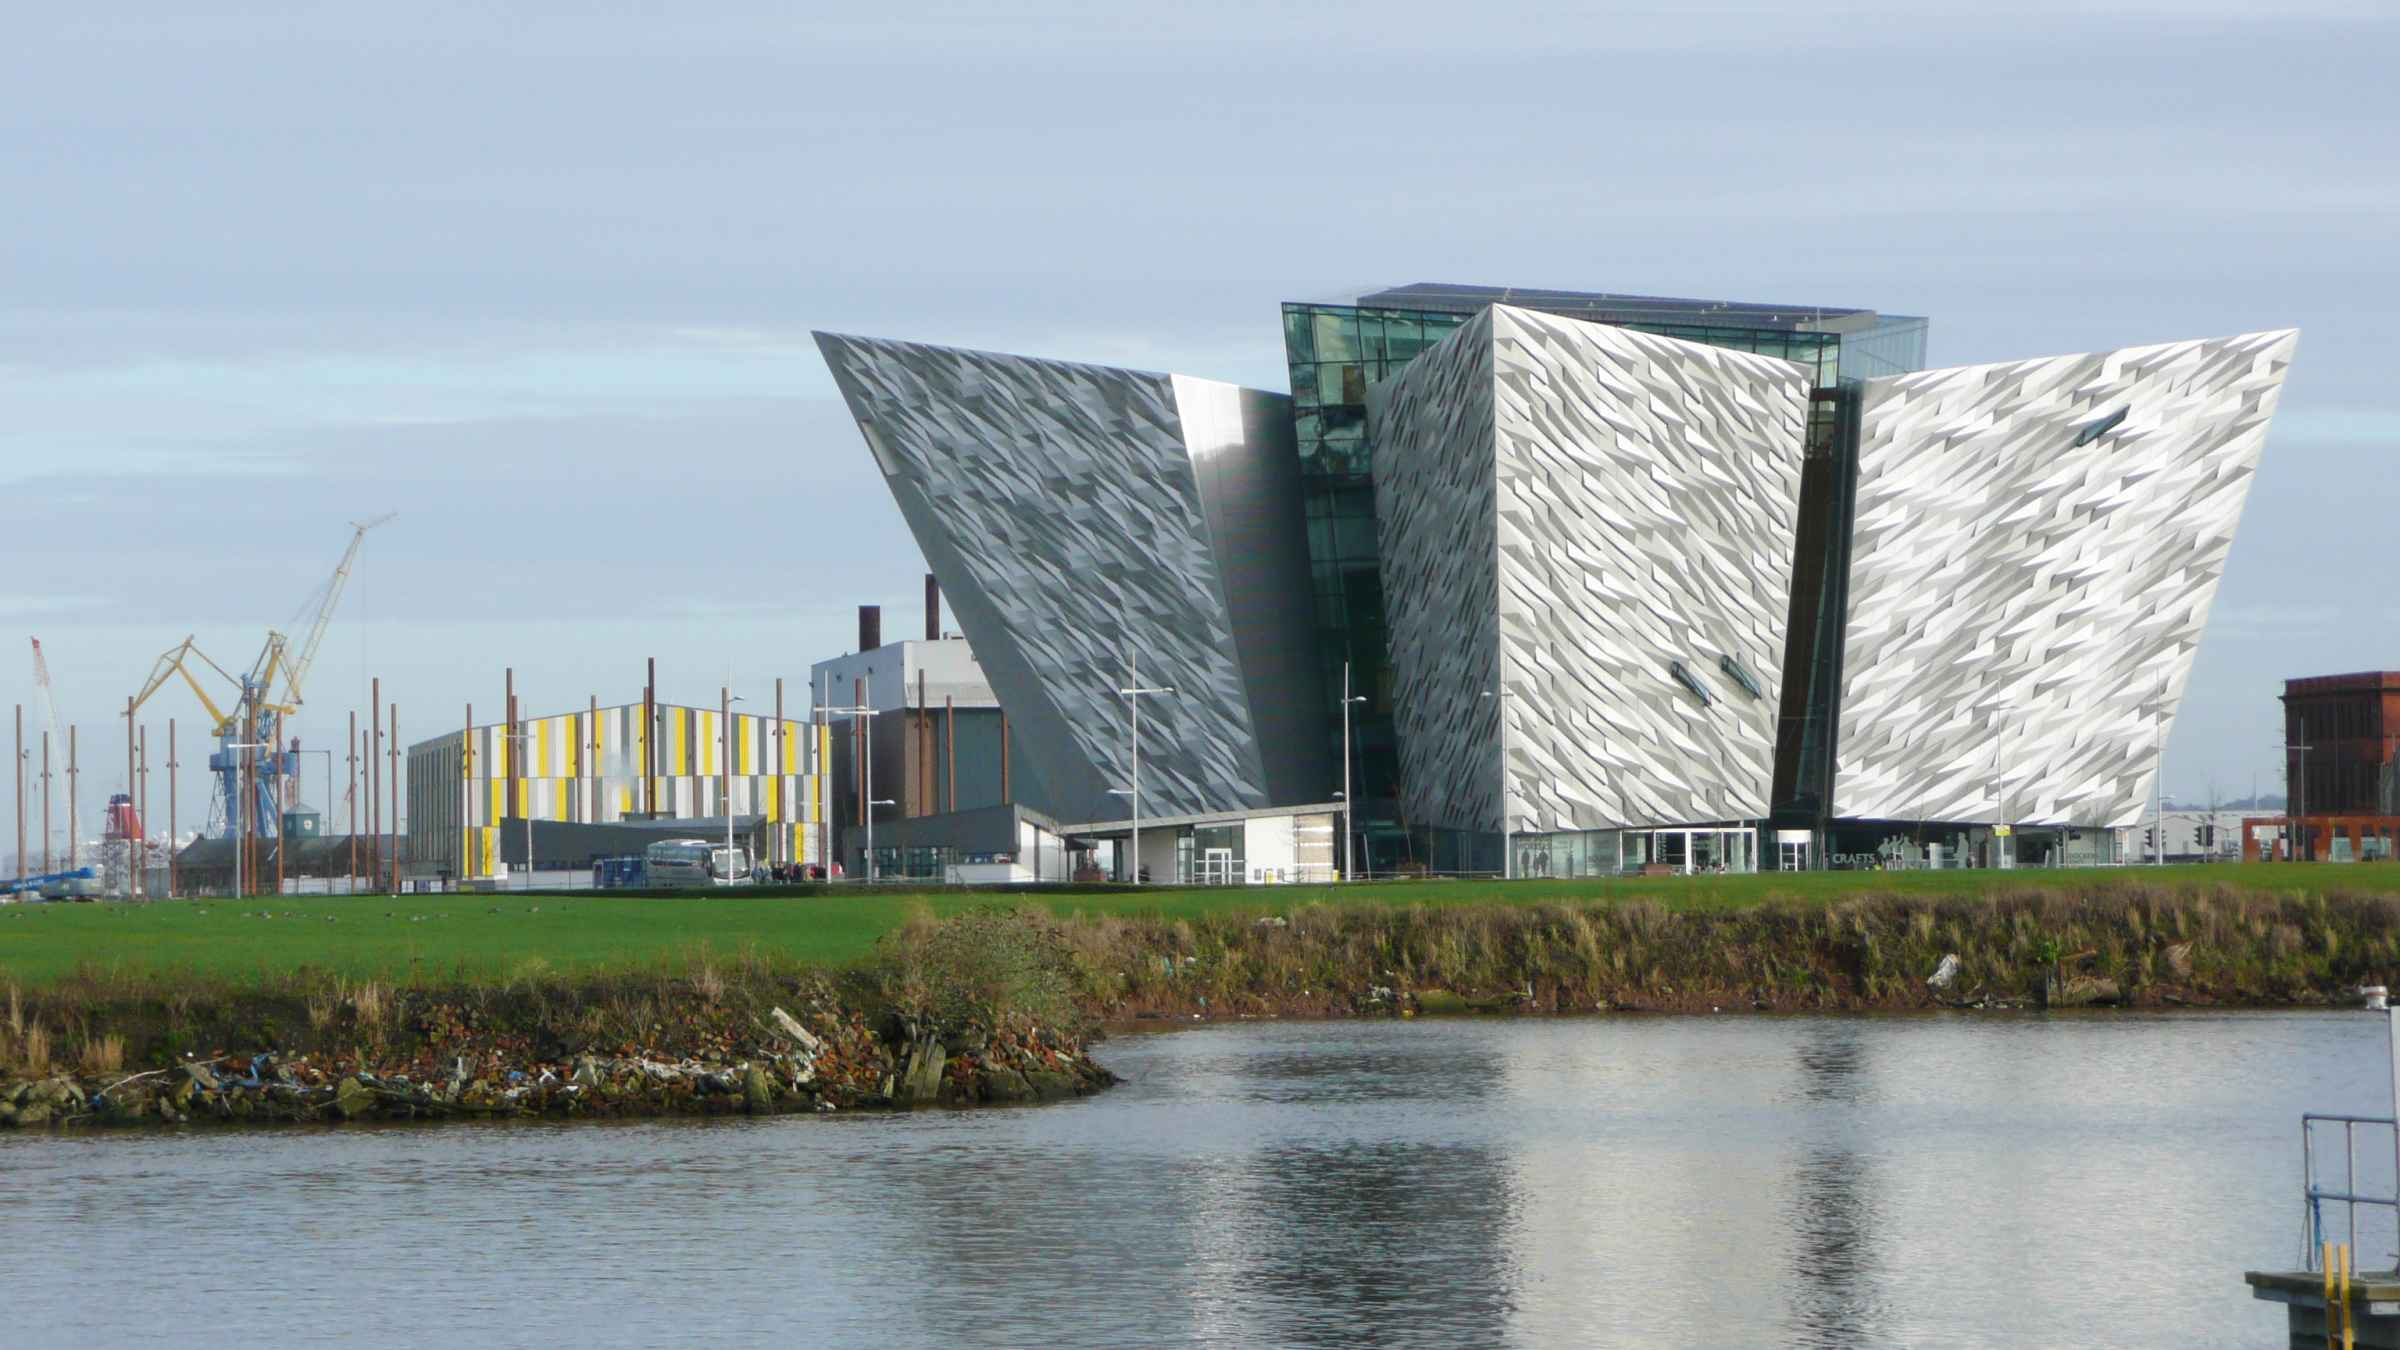 Titanic Belfast Museums 2021 - Find Top-Rated Tickets for the Best Museums  in Titanic Belfast | GetYourGuide